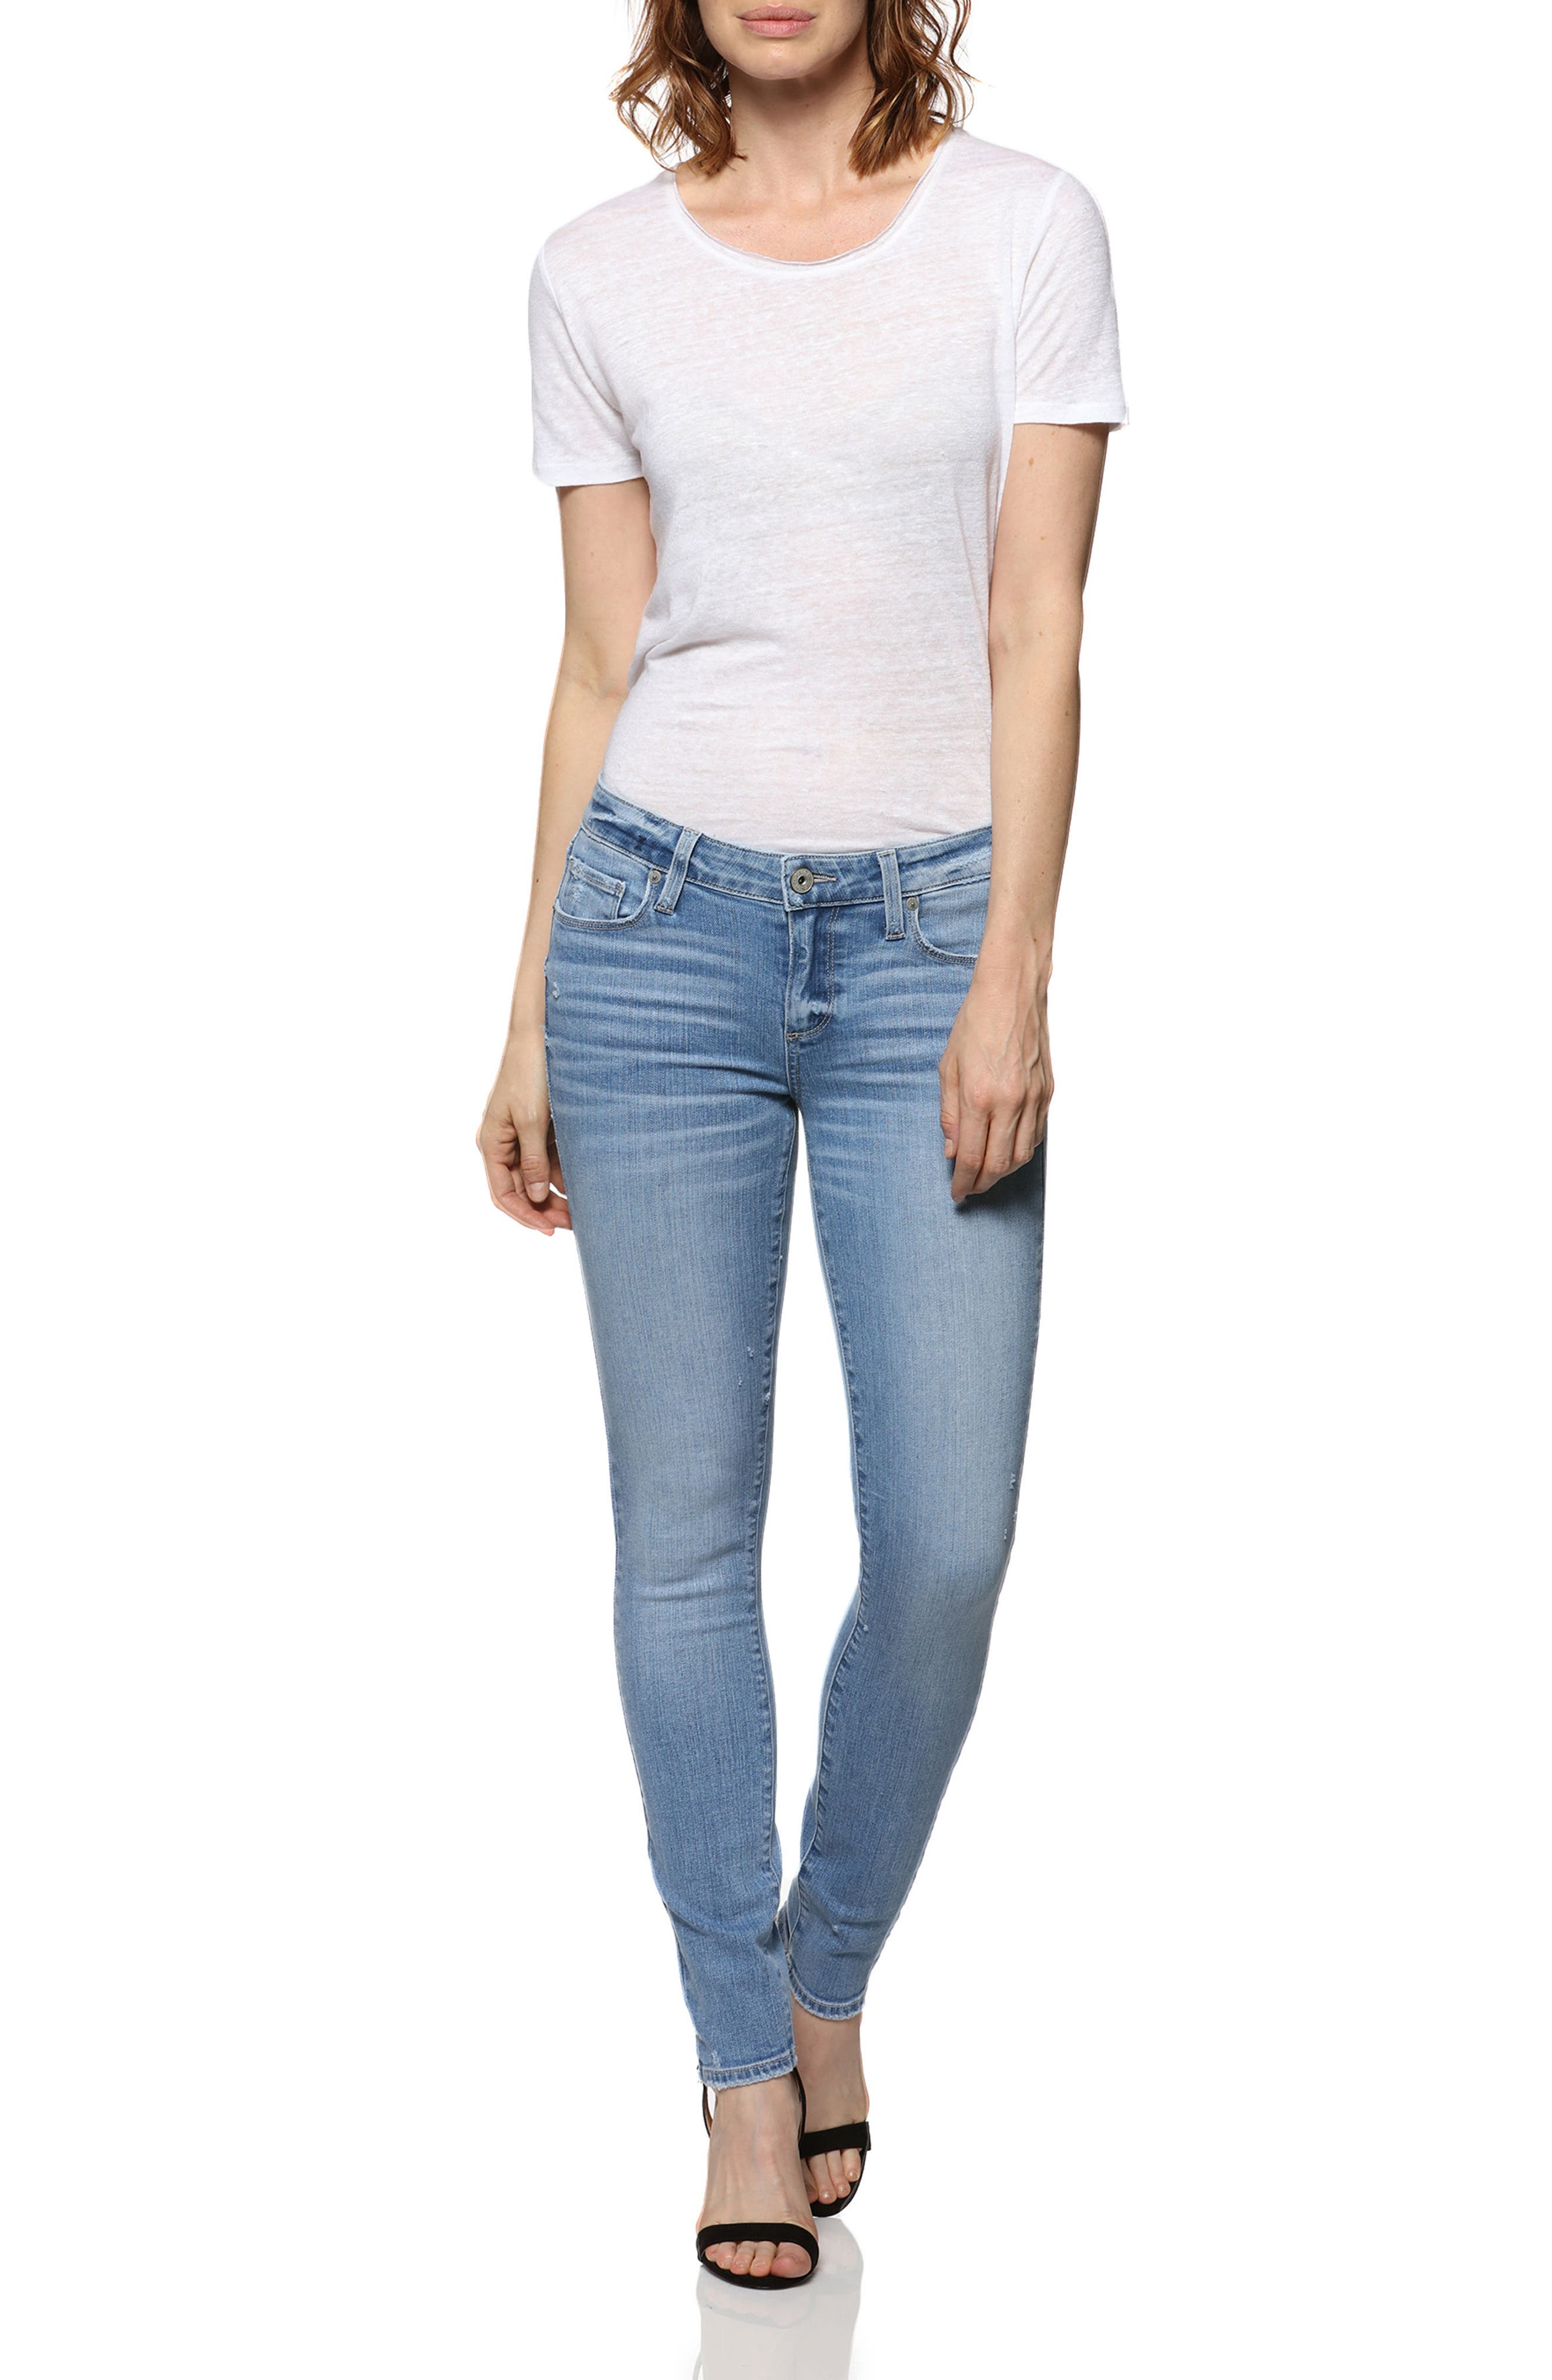 Skyline Ankle Skinny Jeans,                             Alternate thumbnail 3, color,                             400